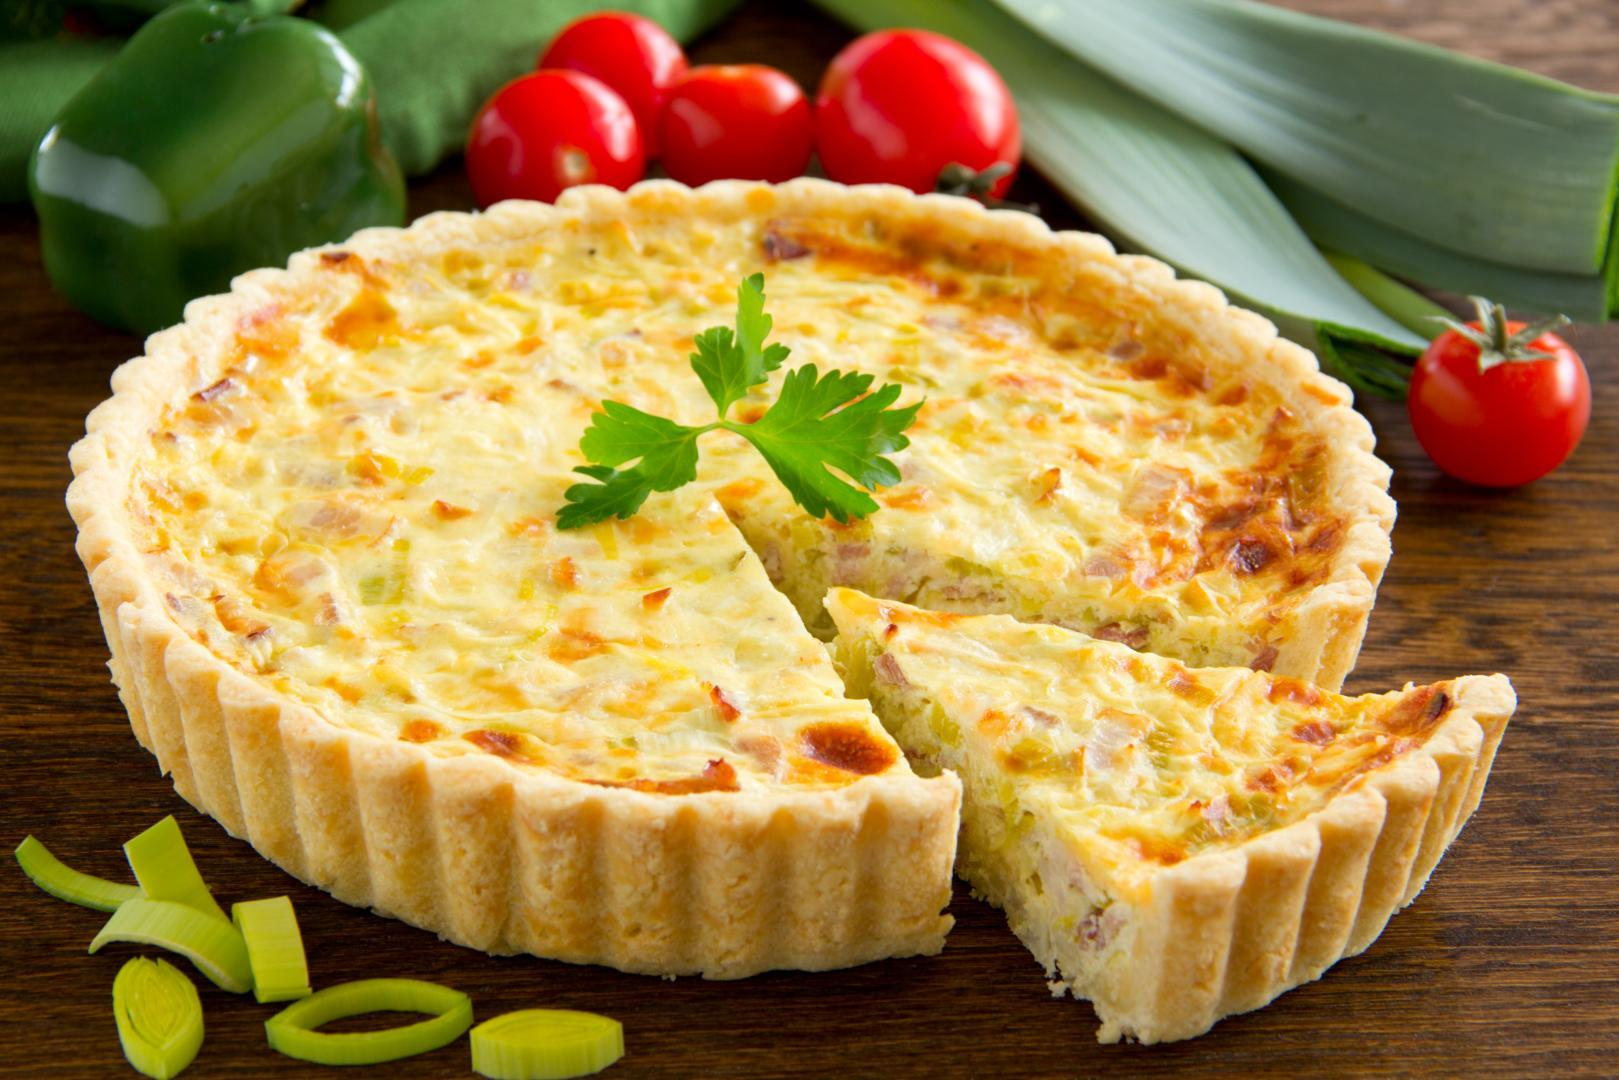 Distributeur de fond de quiche France